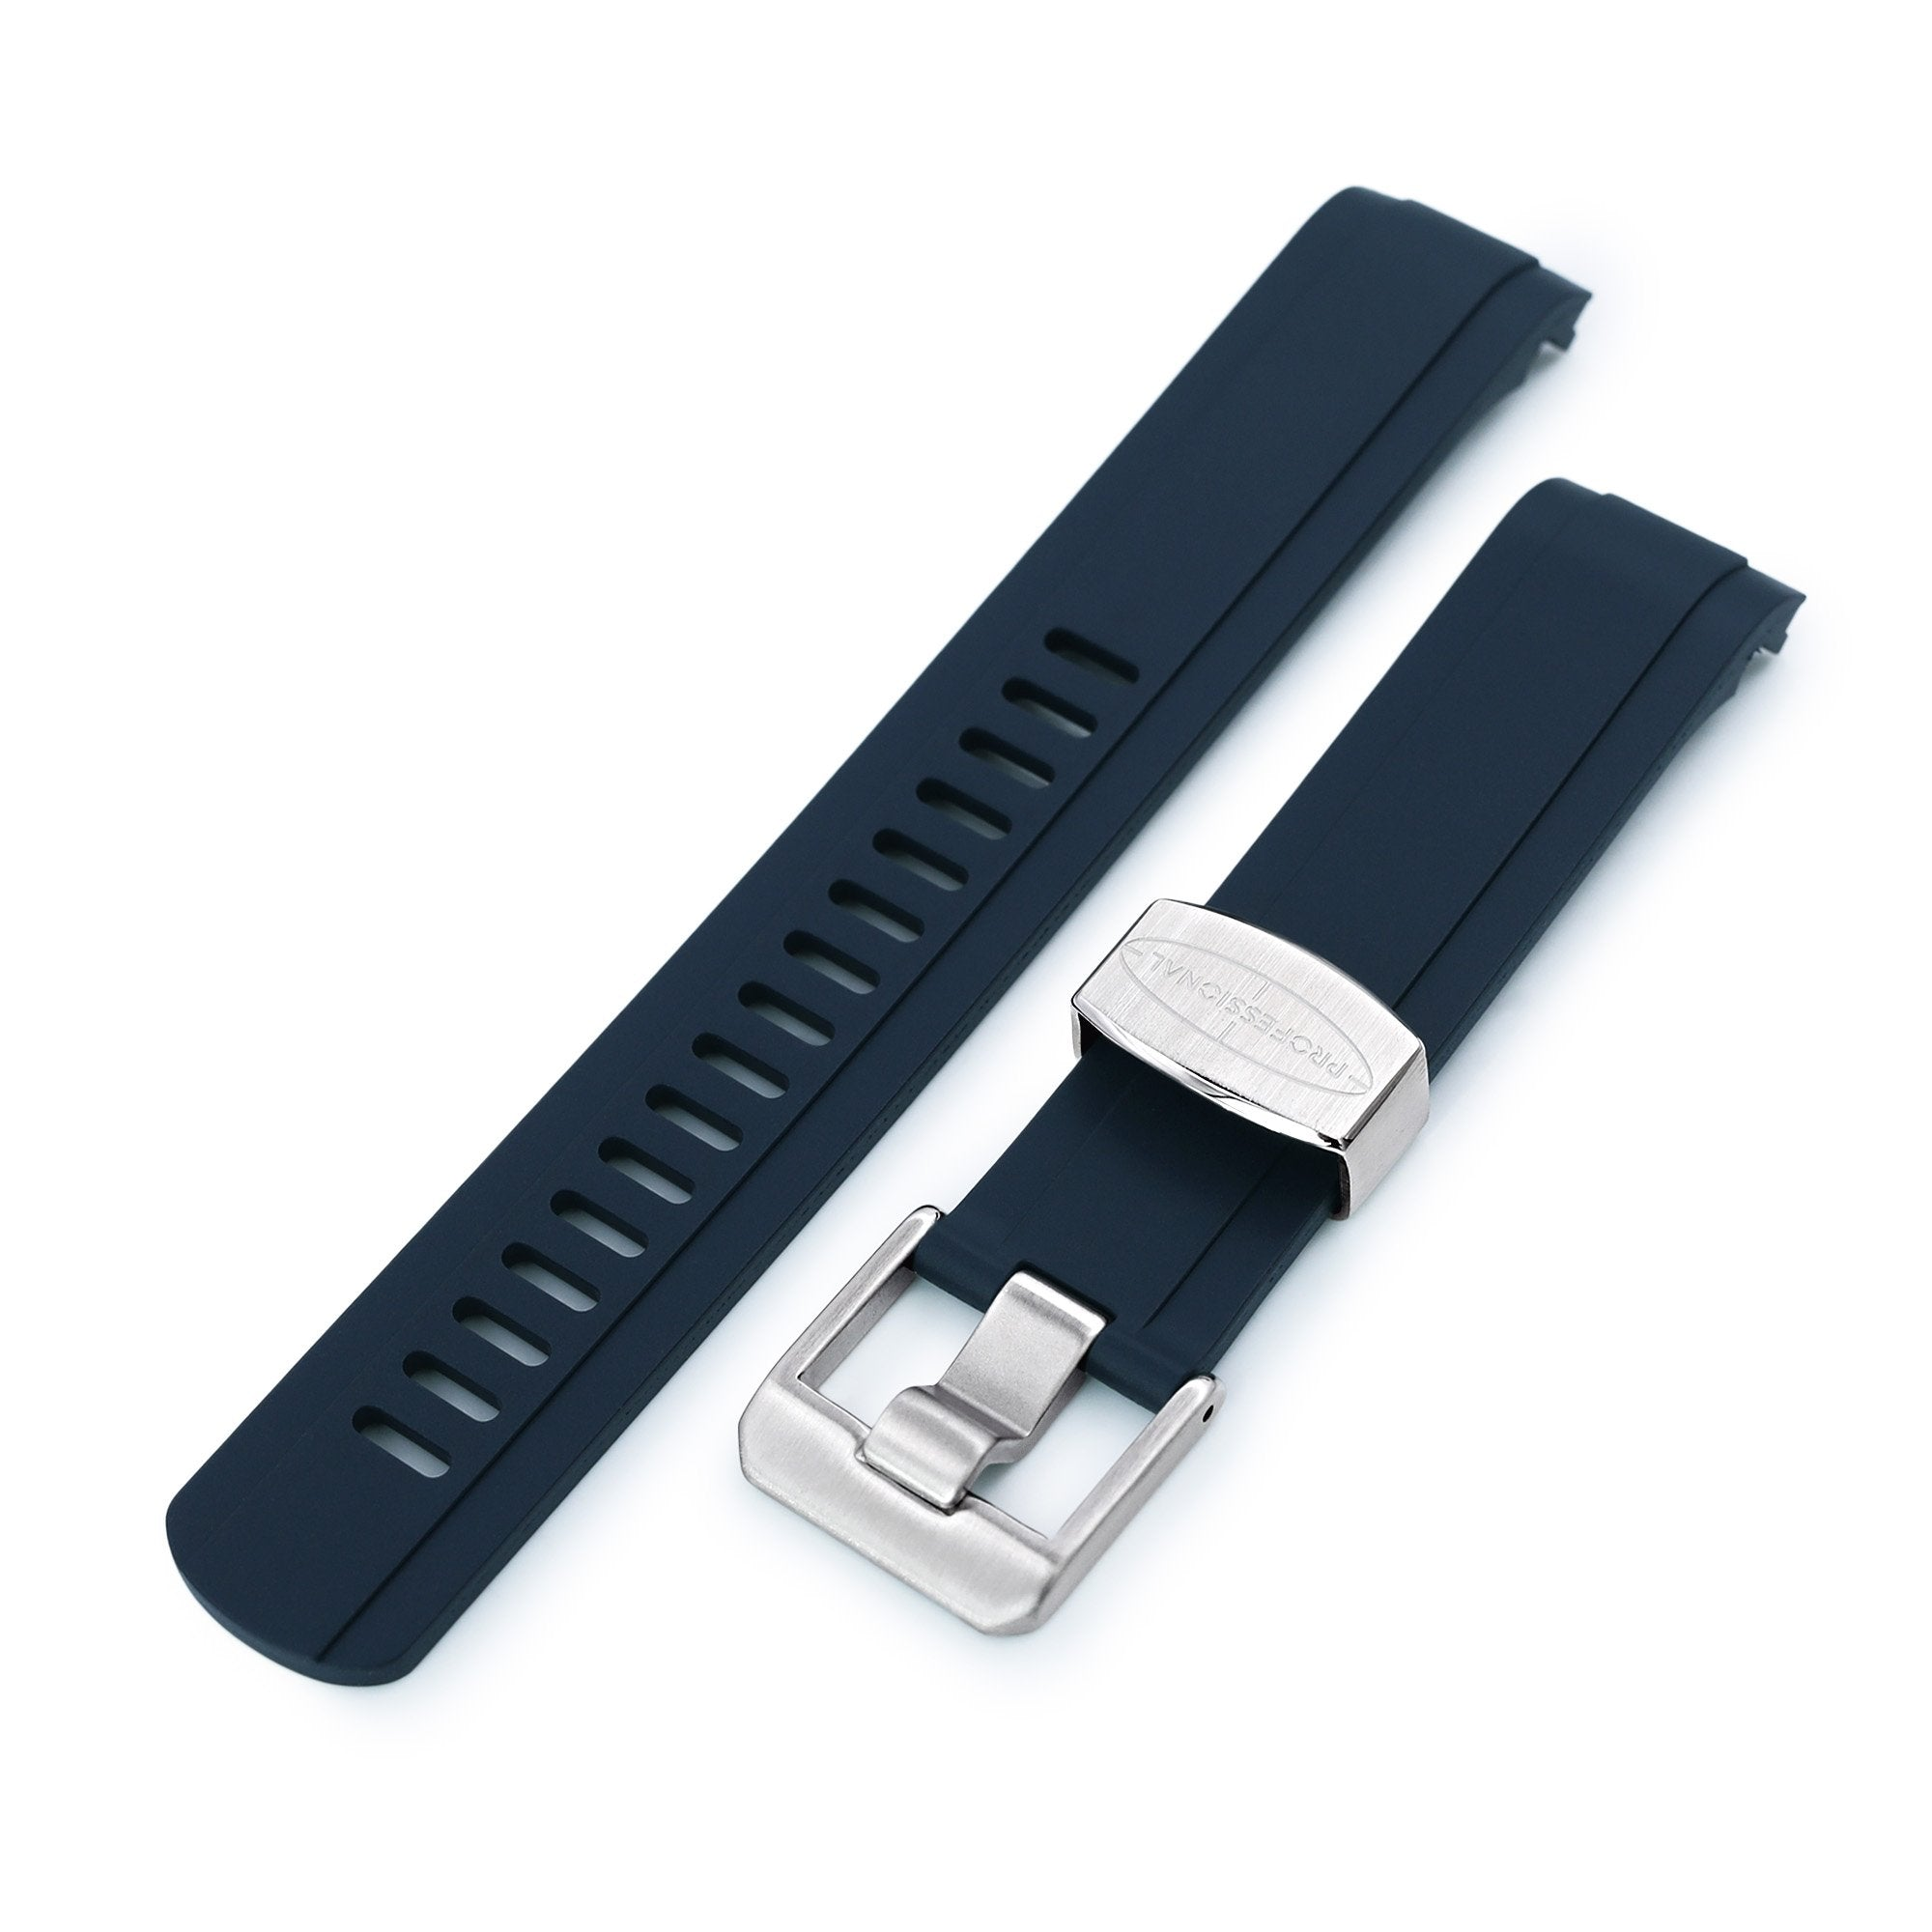 20mm Crafter Blue - Dark Blue Rubber Curved Lug Watch Strap for Seiko Baby MM200 & Mini Turtles Strapcode Watch Bands